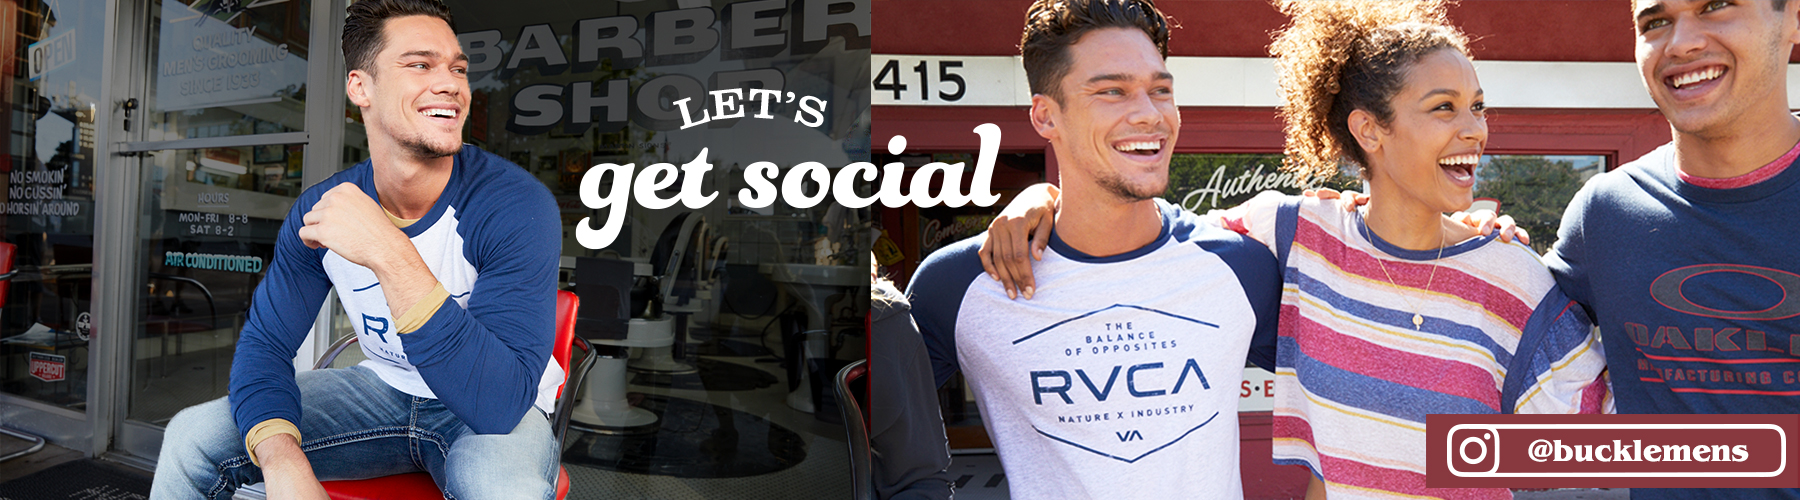 Let's Get Social - Guy wearing a blue and white raglan sleeve RVCA t-shirt with a girl wearing a short sleeve striped top